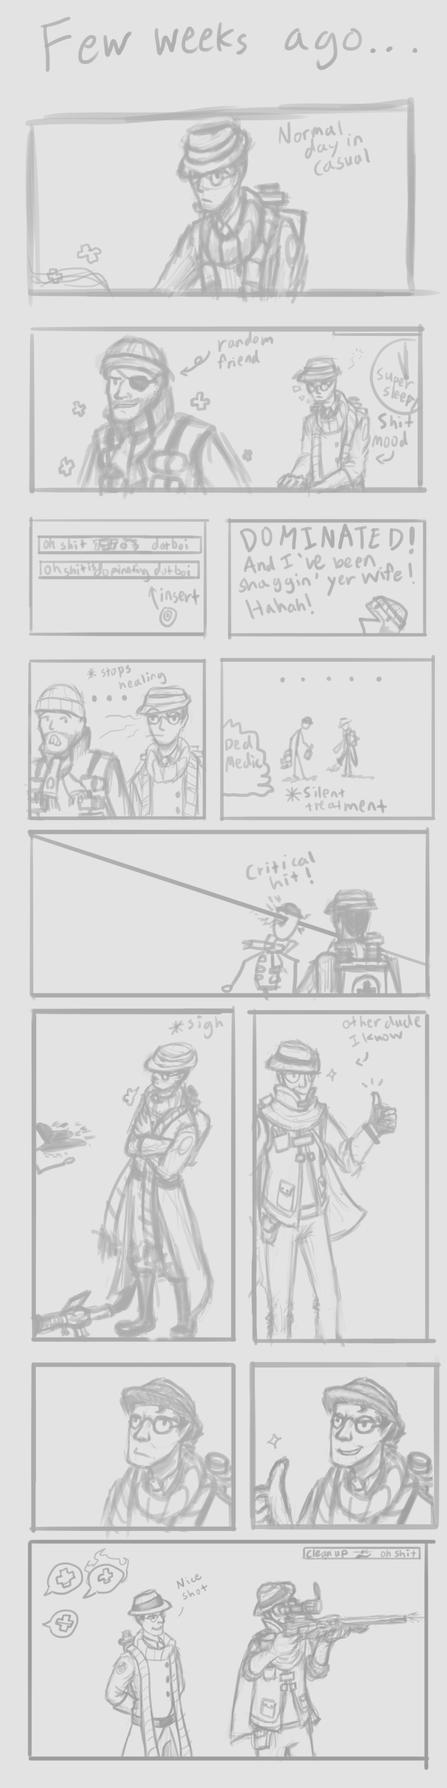 TF2 Pretty bad tales by Luccccccccerina